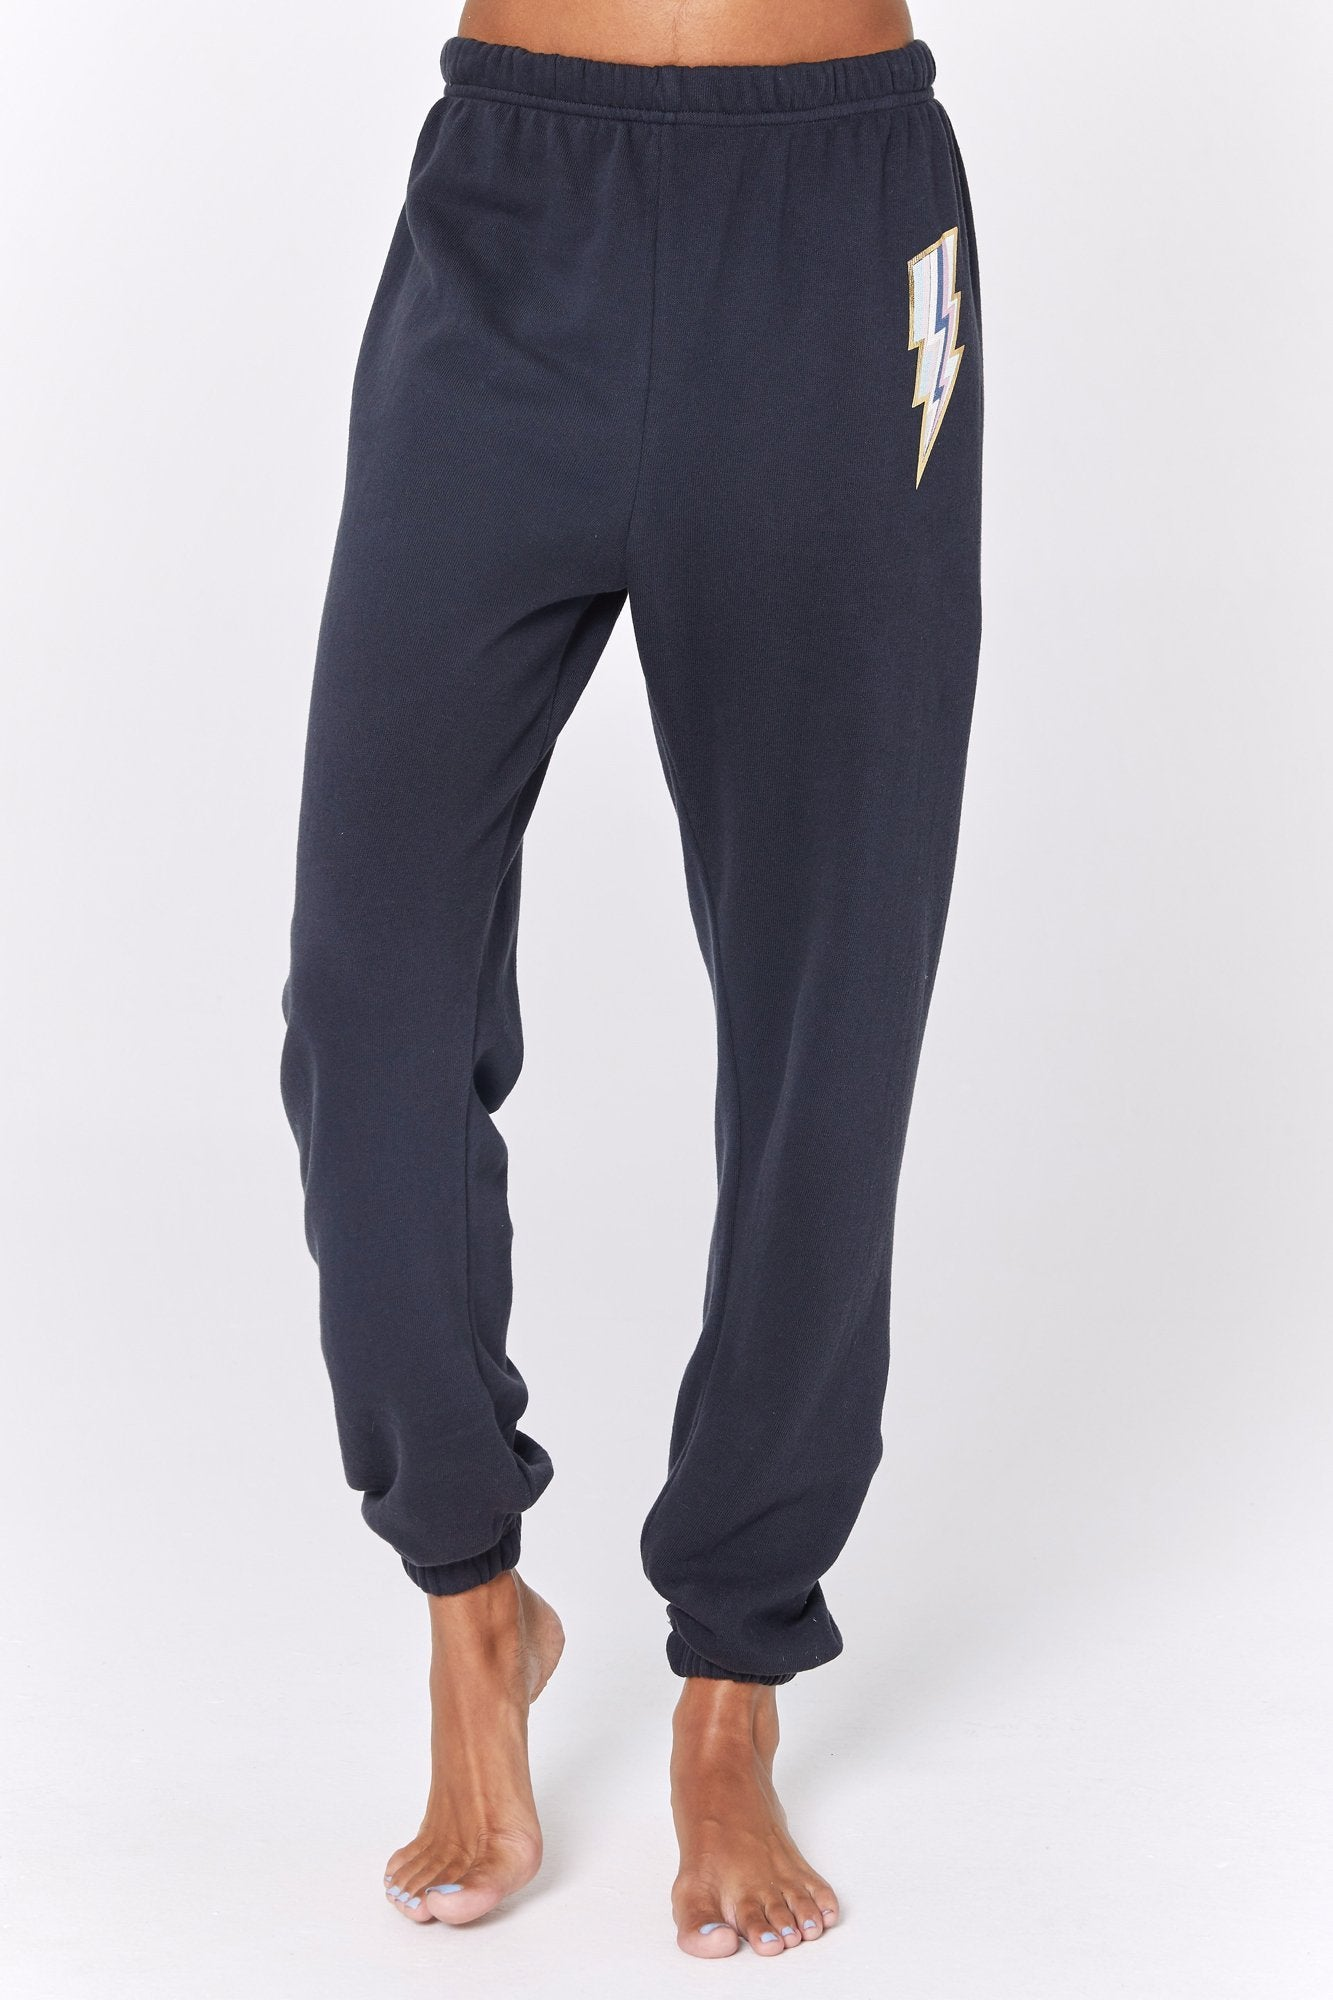 Model is wearing dark grey spiritual gangster sweatpants. The lightning lightweight sessions sweatpant has elastic bottoms and waist band. The sweatpants feature a lightning bolt on the left upper thigh outlined in white with blue and pink stripes through it.